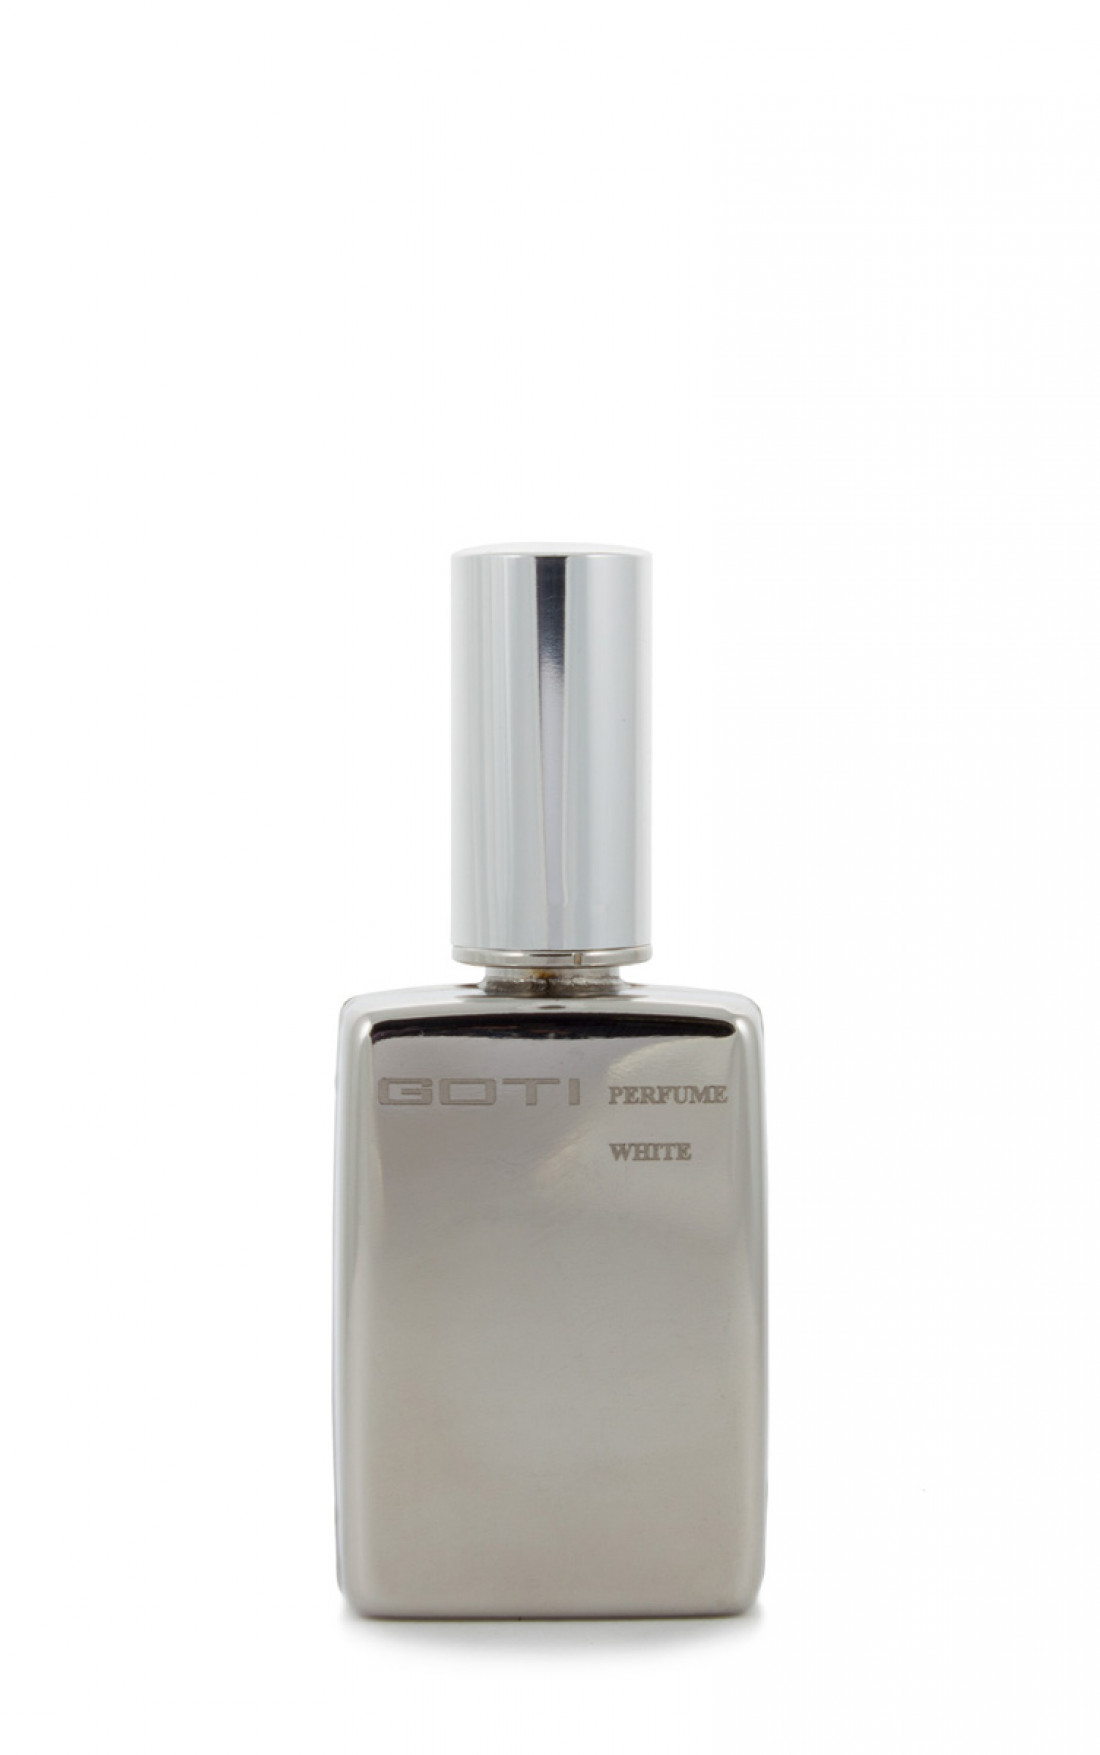 Goti White Perfume 50 ml Boudi UK